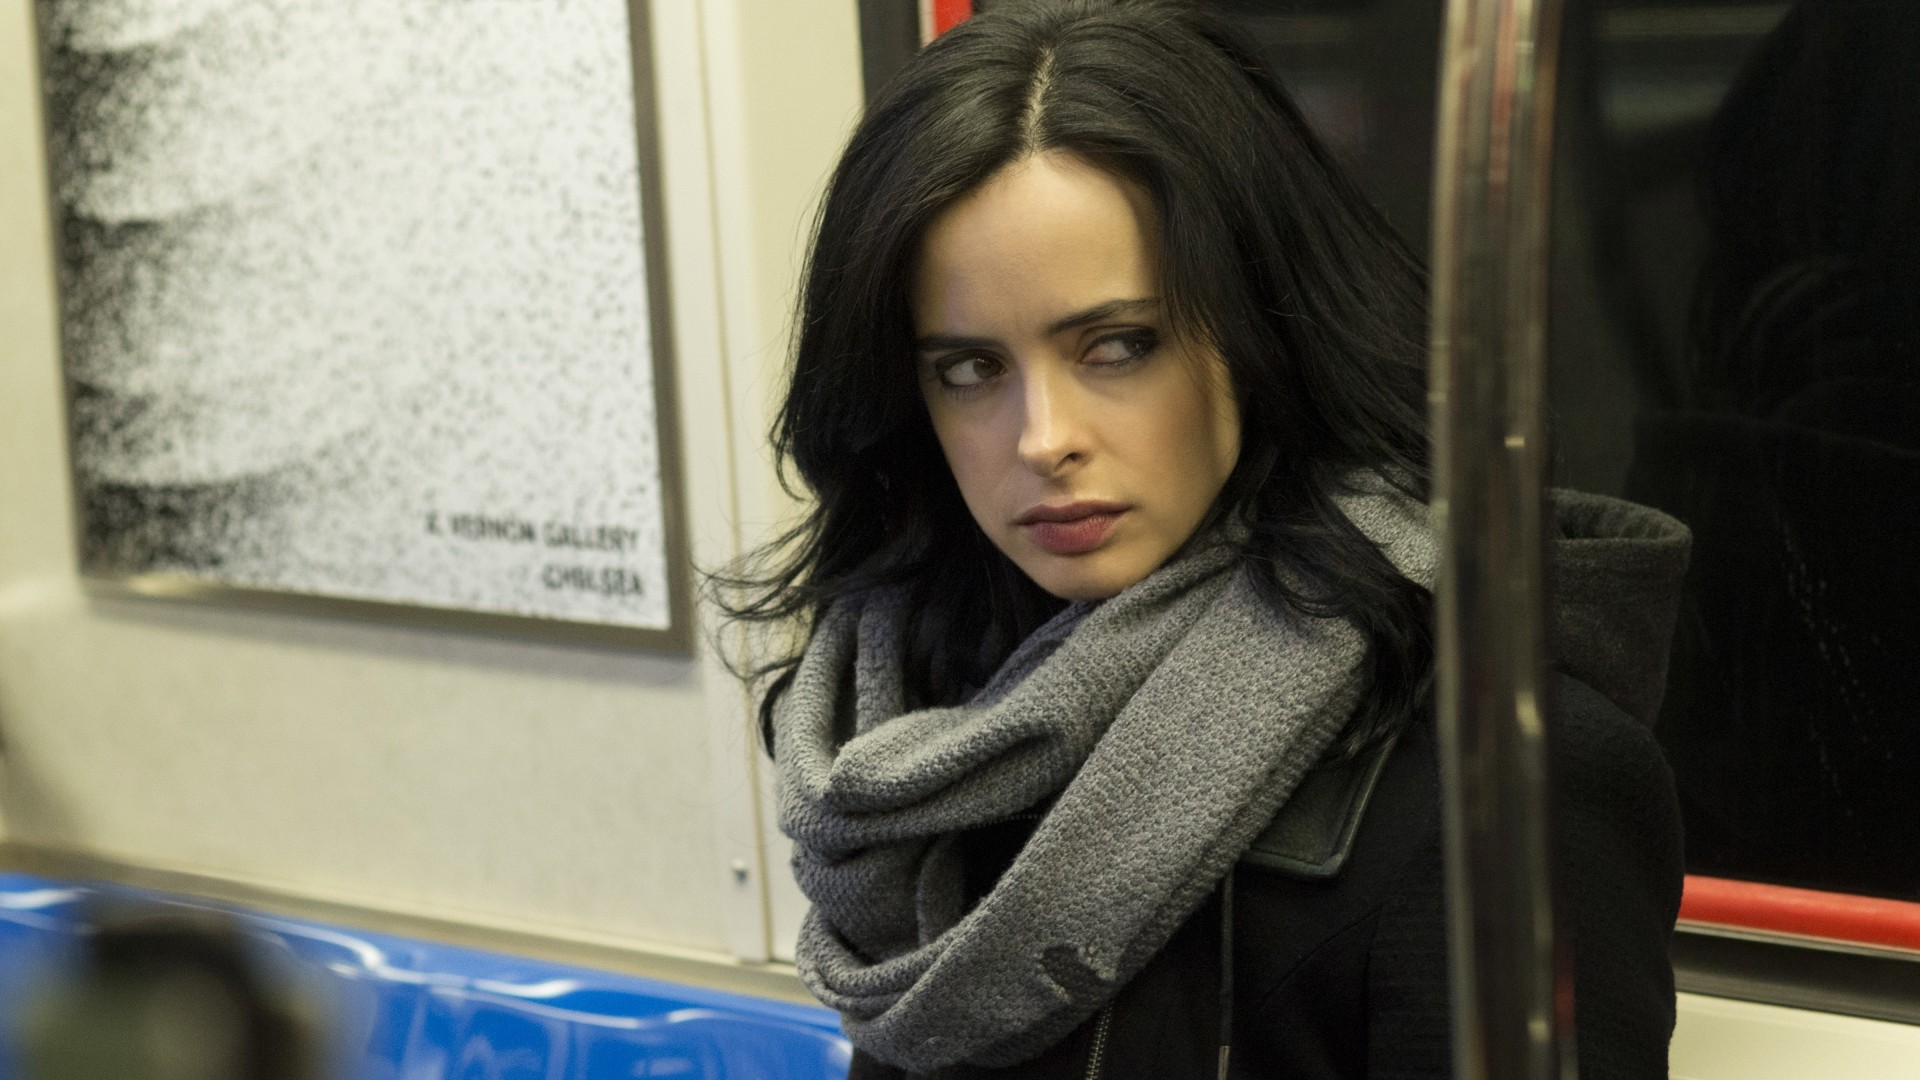 jessica_jones_netflix_marvel_comics_105805_3840x2160